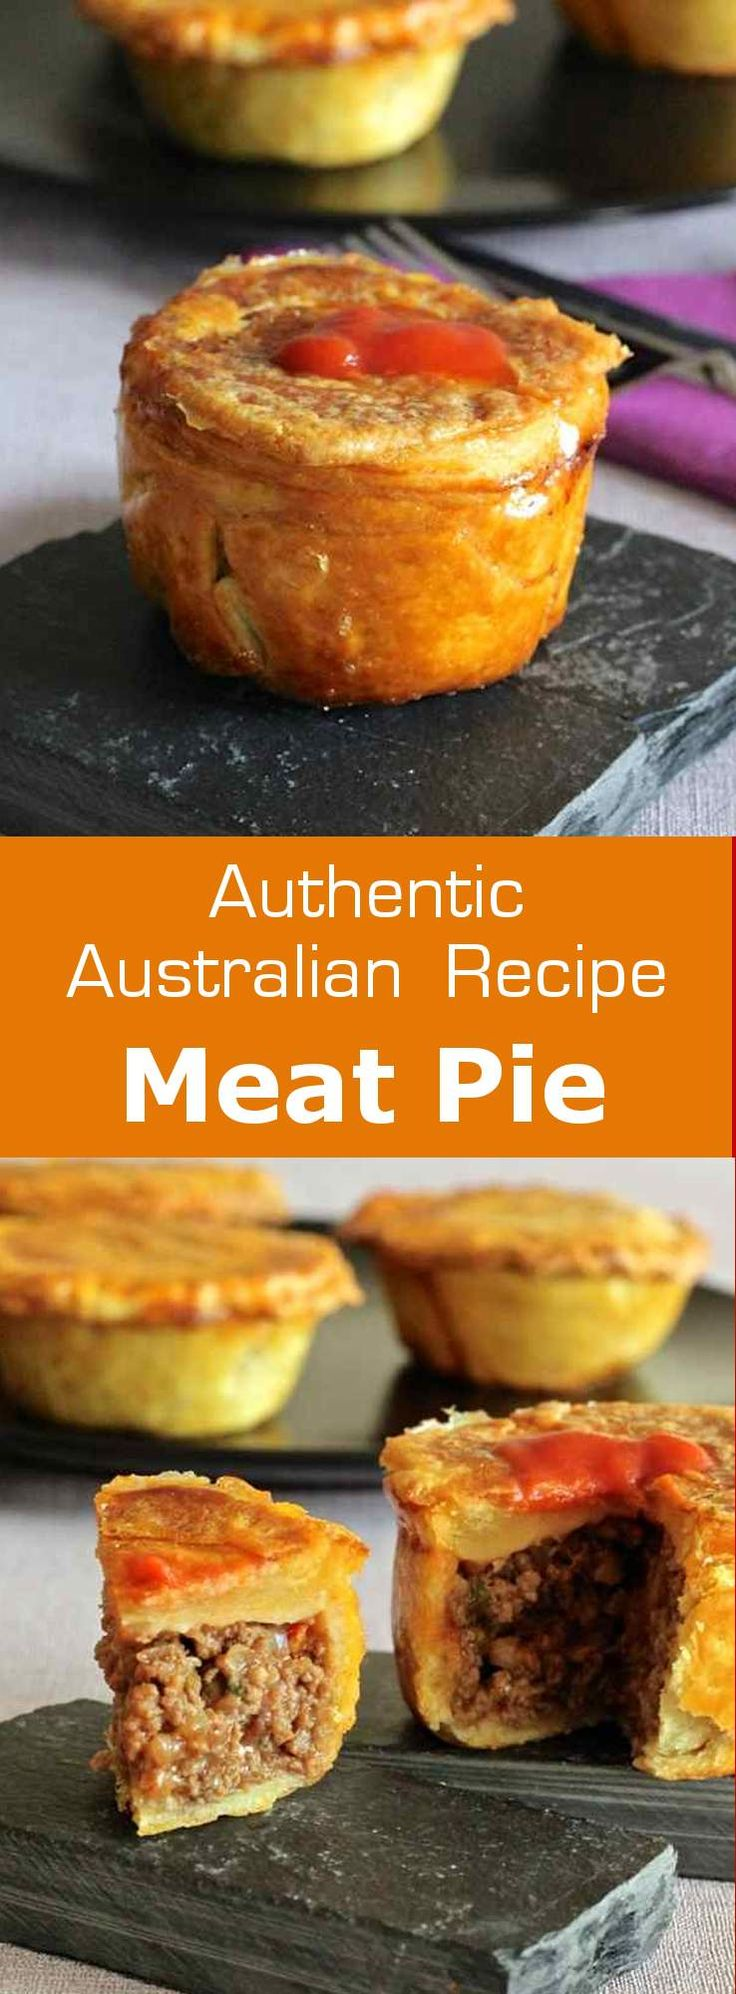 Meat pie, one of the most emblematic dishes of Australia, is a pie stuffed with…